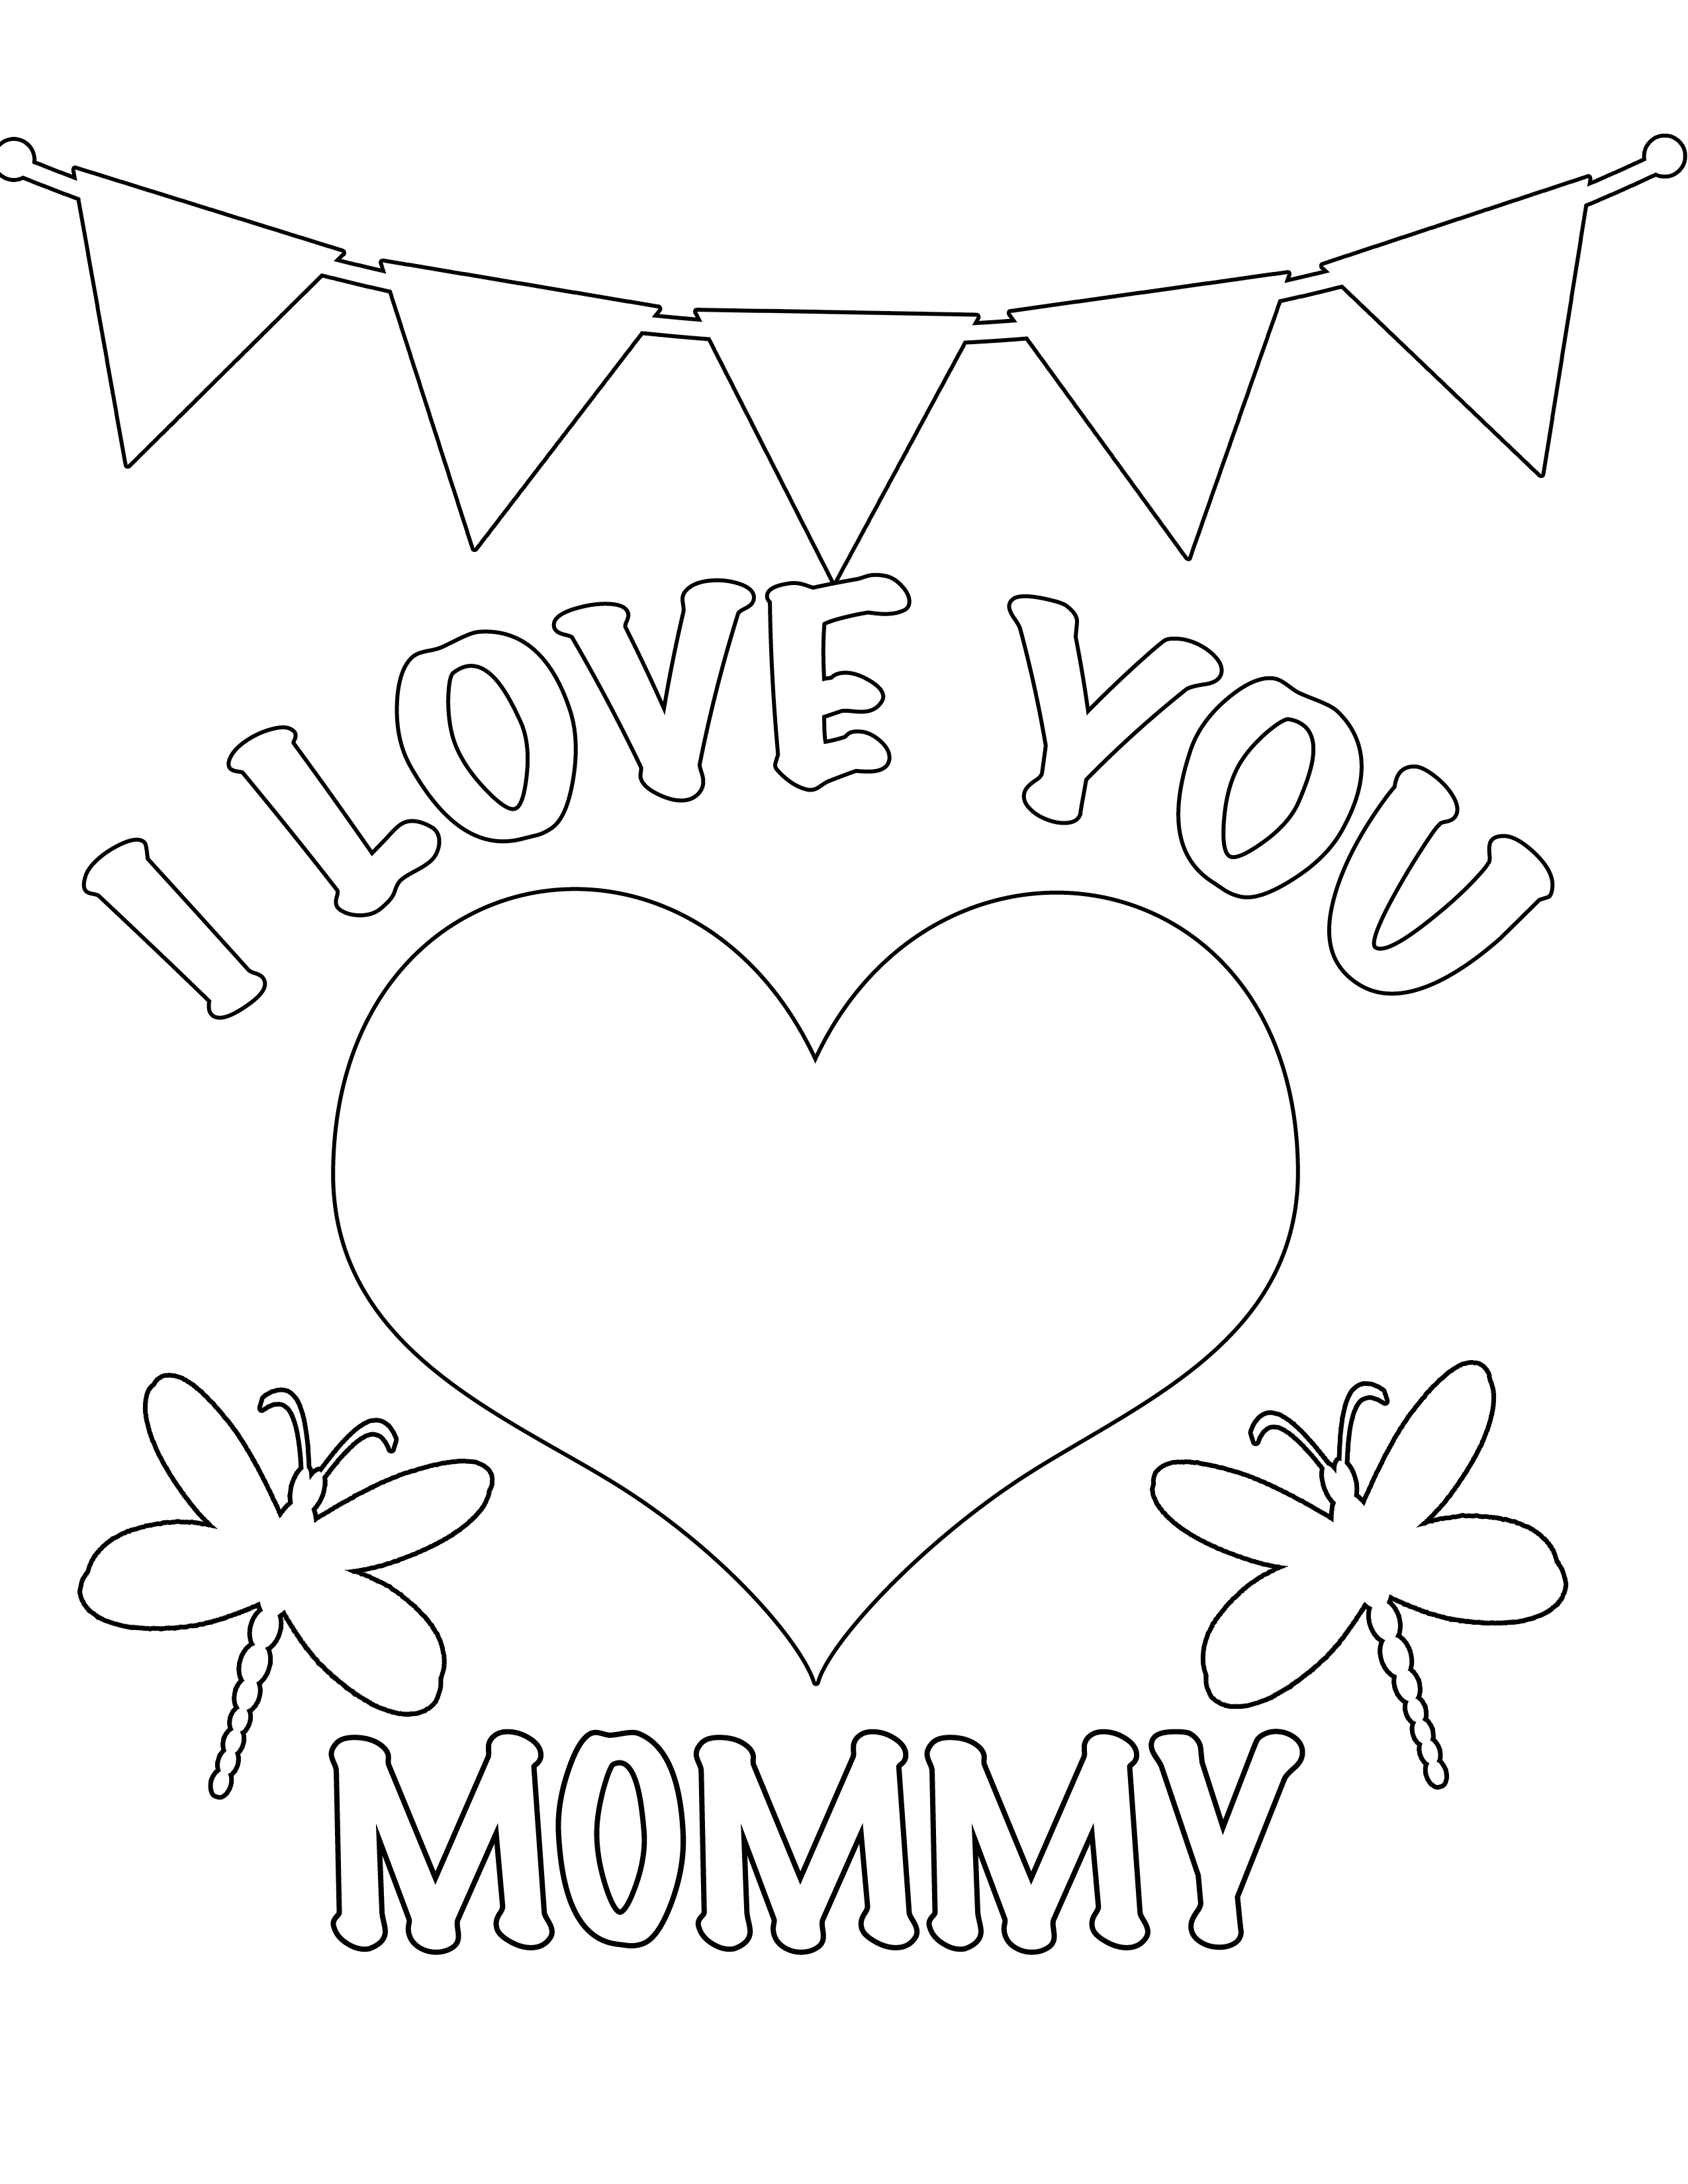 i love my mommy coloring pages free printable coloring pages for mom simple mom project love coloring i pages my mommy